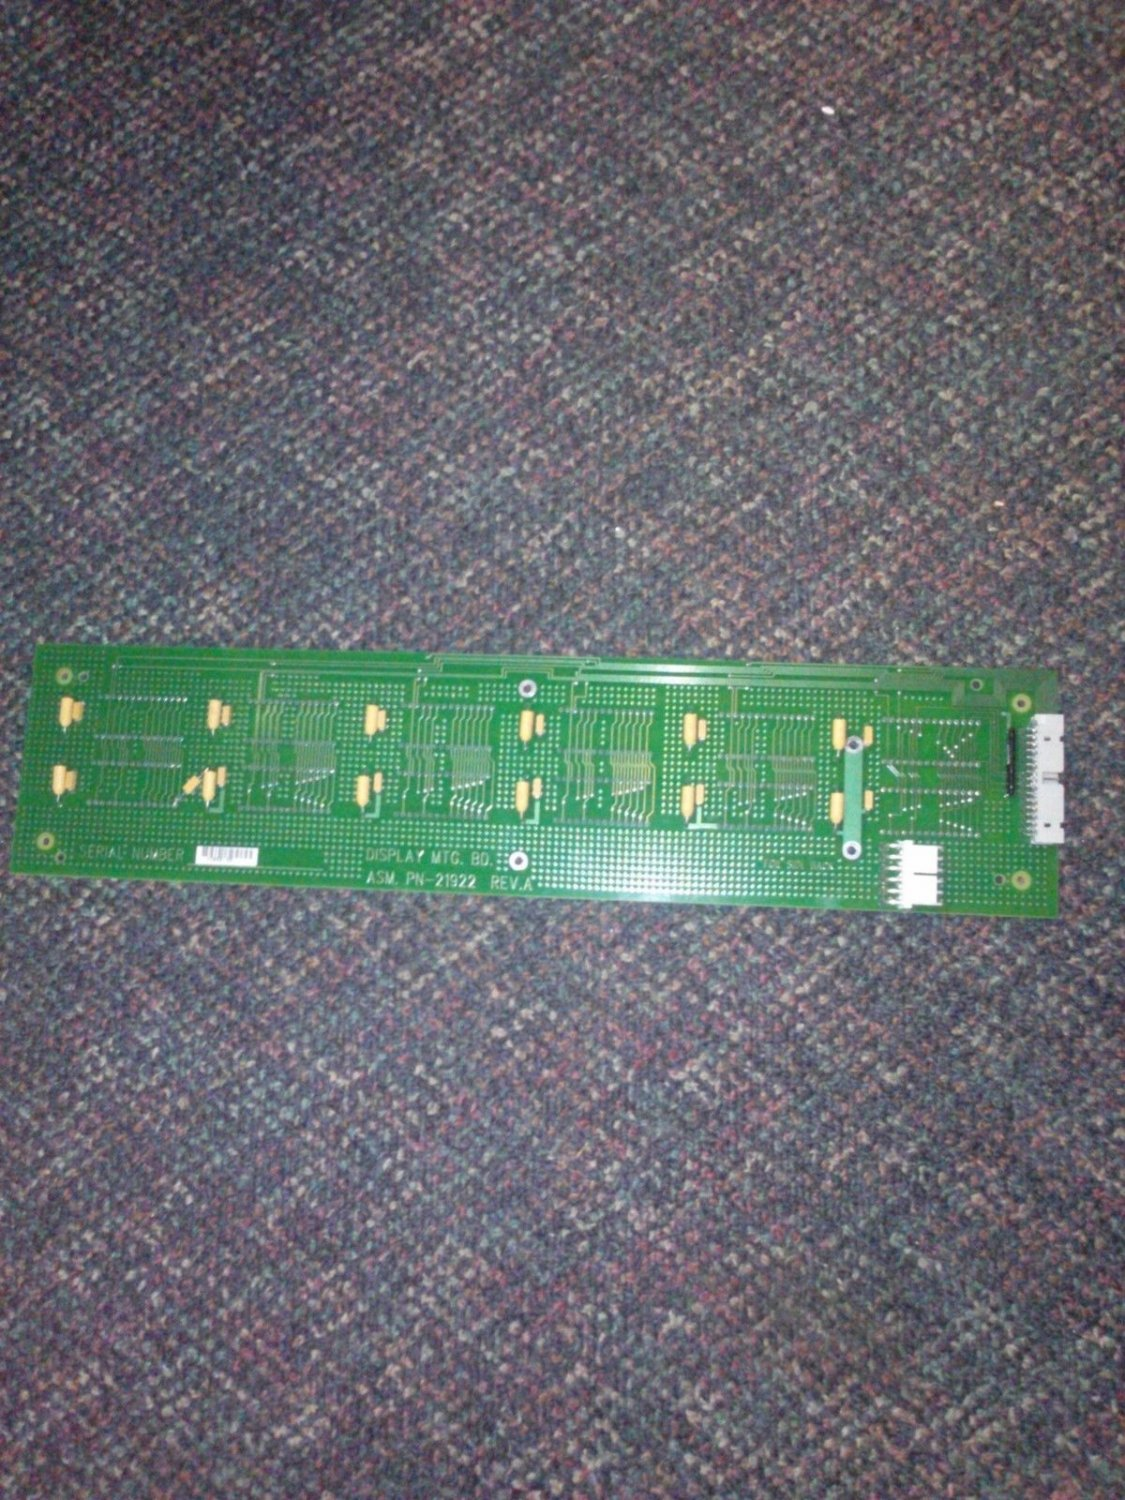 Manual Owners Manual Voice Board Schematics Gumielectronic